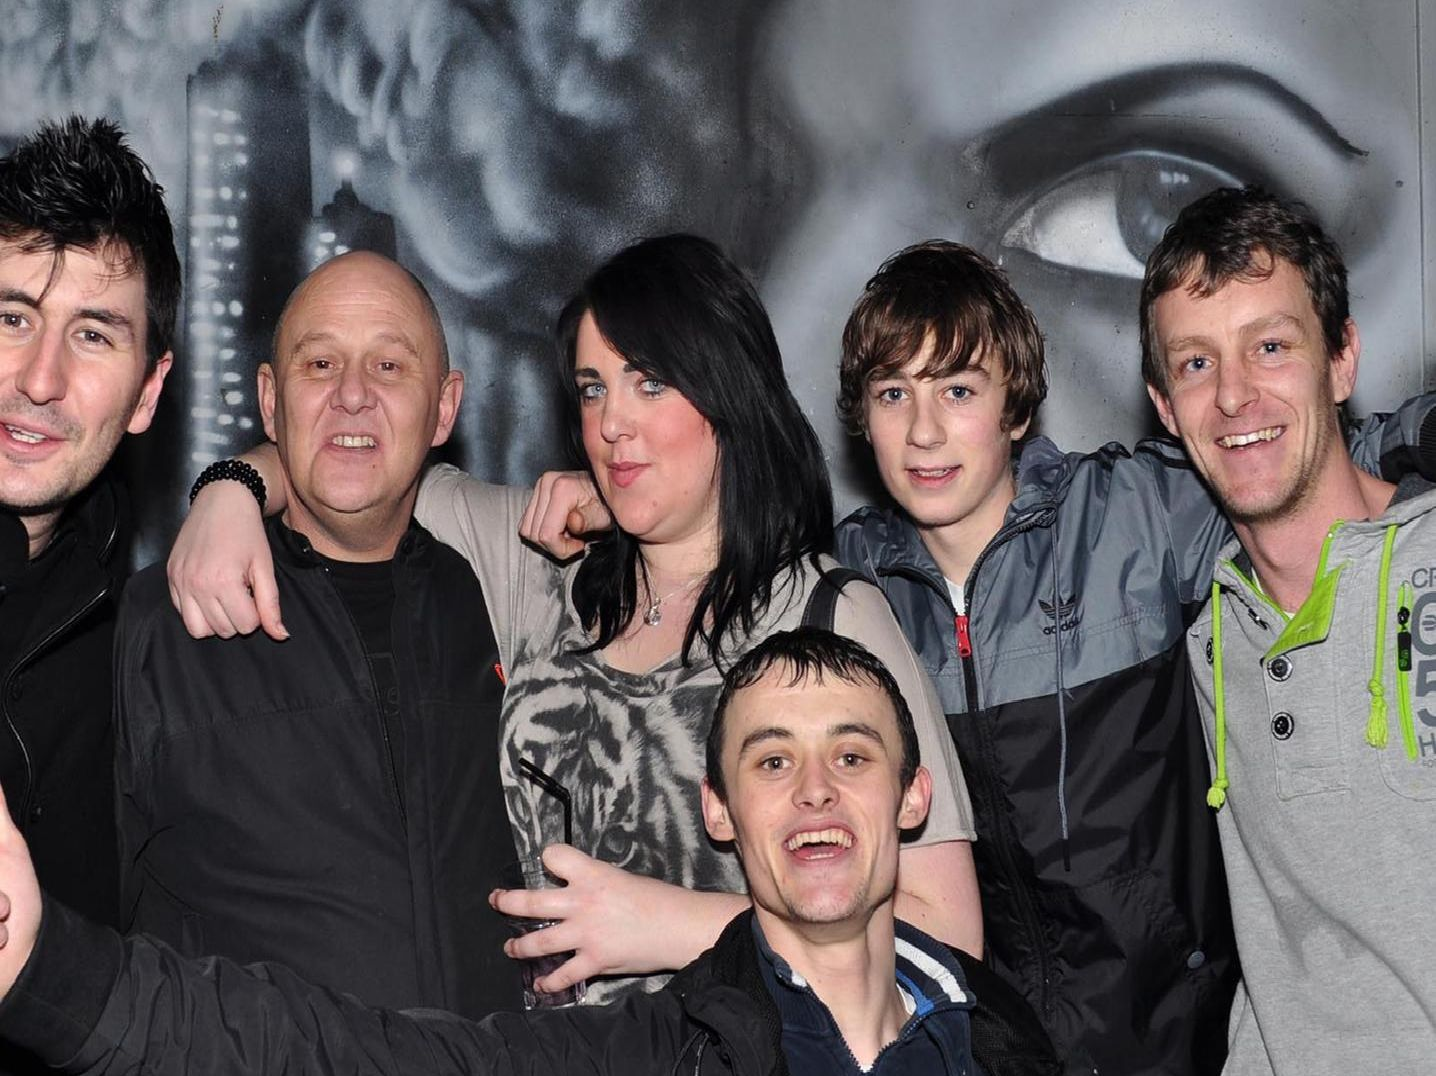 21 photos to take you back to Boleyns in Scarborough in 2011 and 2012.